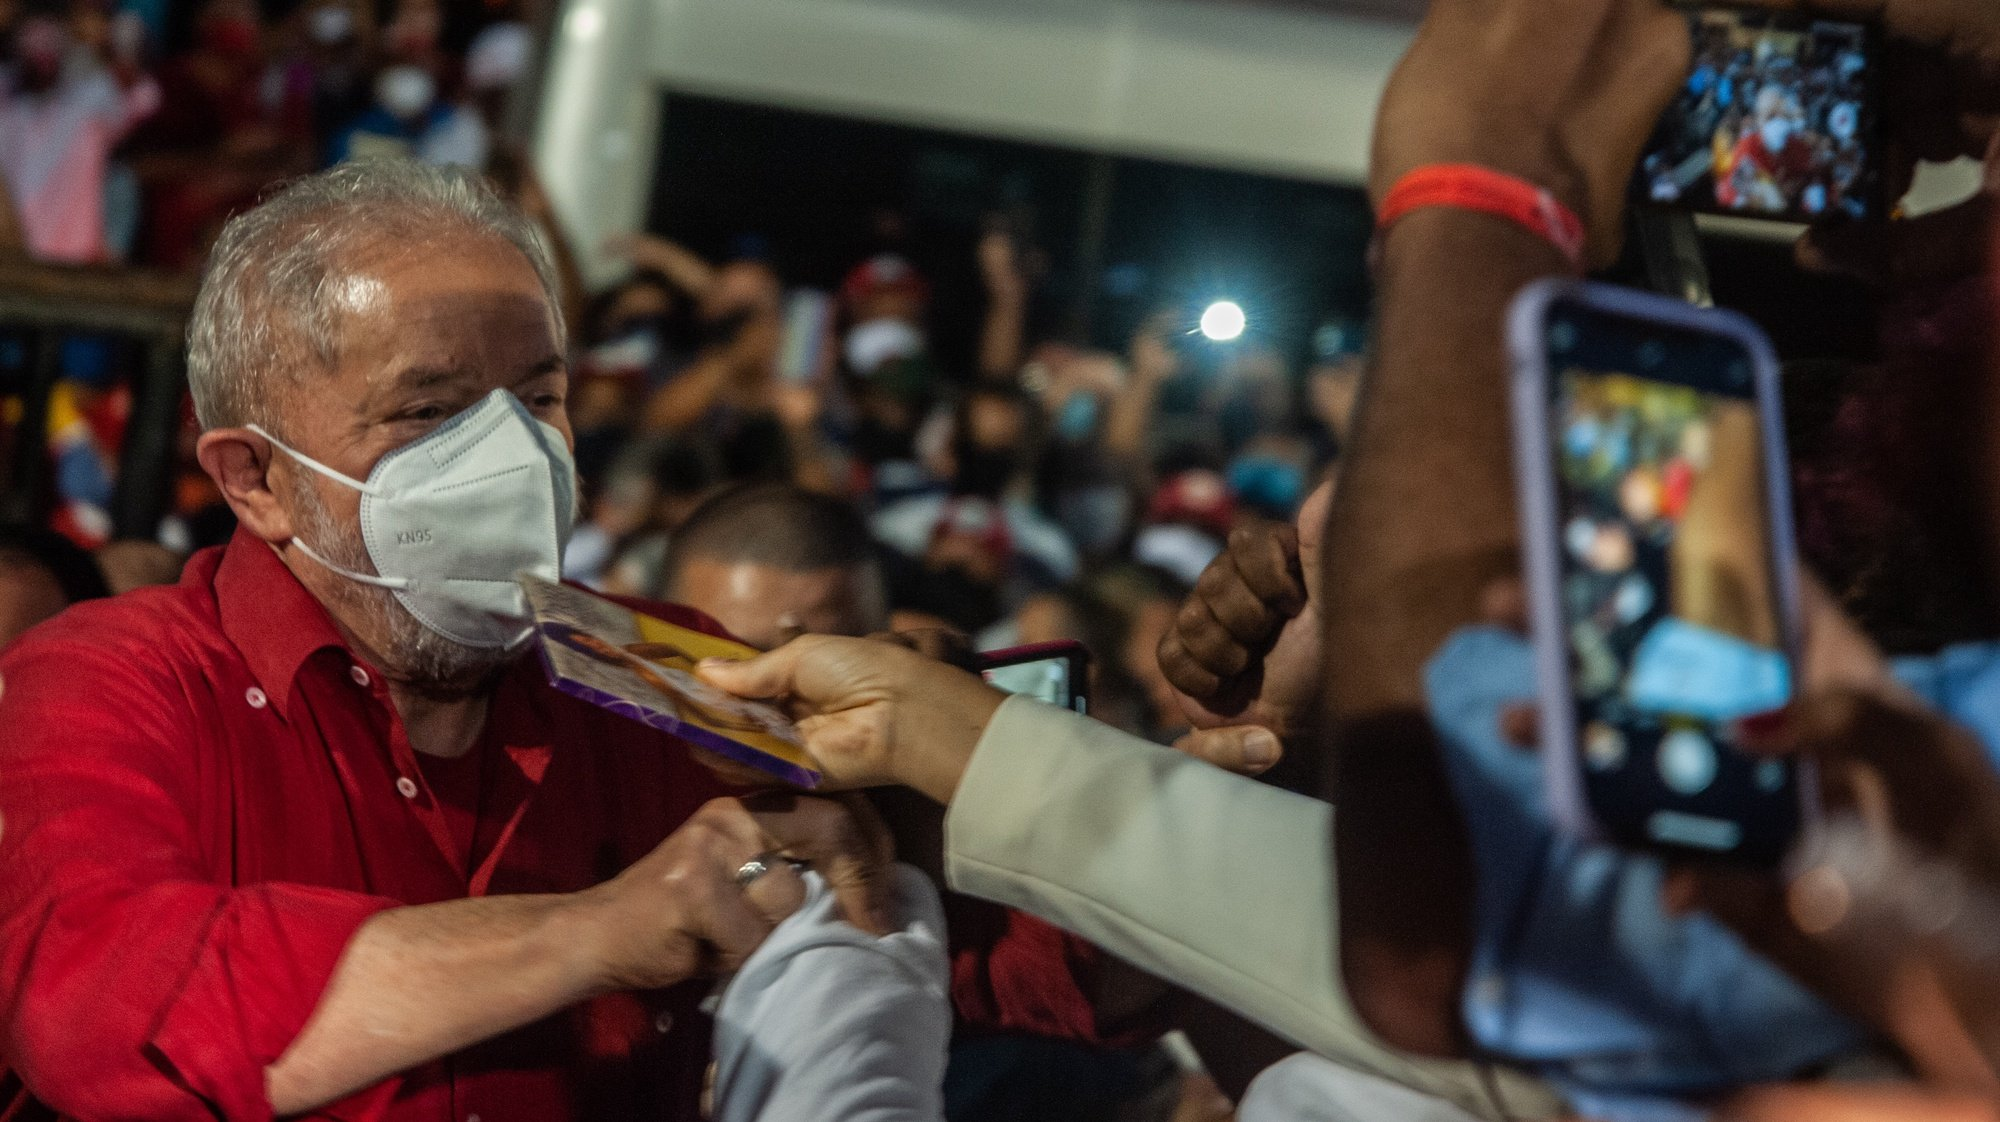 epa09431398 Former Brazilian President Luiz Inácio Lula da Silva arrives for a meeting with the black movement at the 'Senzala del Barro Preto', headquarters of the Afro ILE AYE troupe, in the city of Salvador, Brazil, 26 August 2021. The former president is on a ten-day tour of six states in the northeast of Brazil, the poorest region of the country and an electoral stronghold of the PT (Workers Party), to meet with political and social leaders.  EPA/Felipe Iruatã